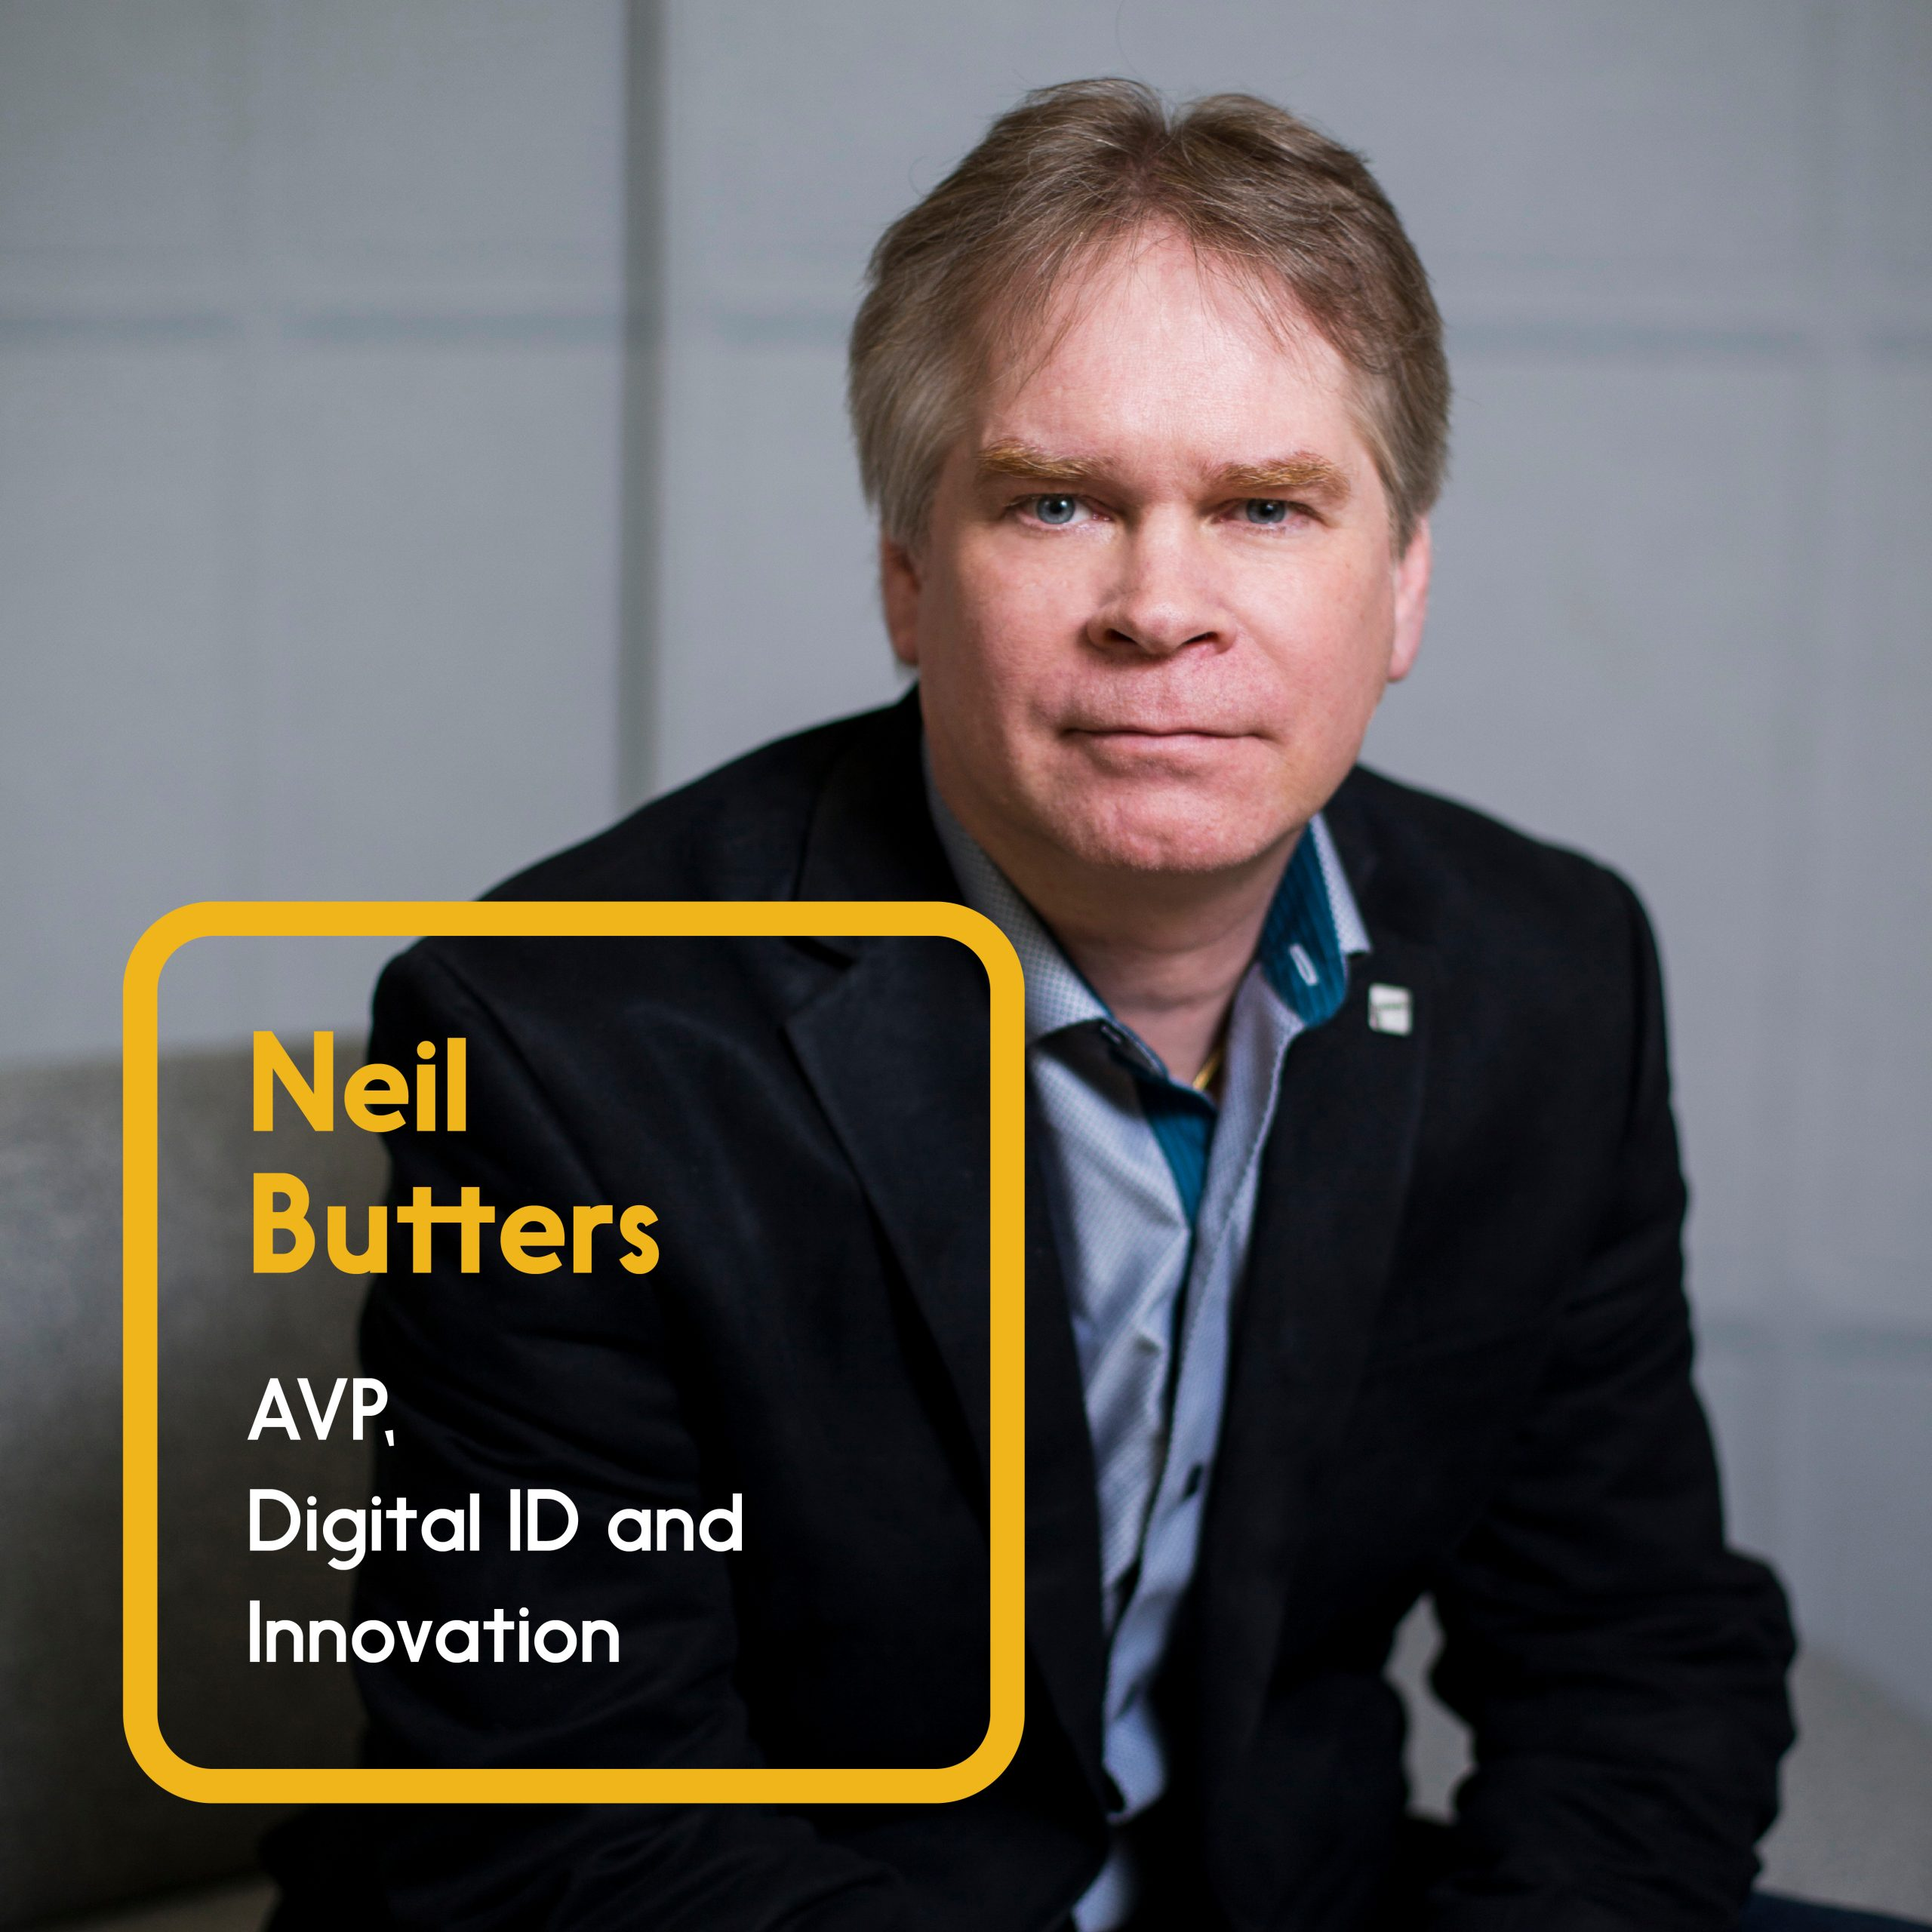 Neil Butters AVP, Digital ID and Innovation